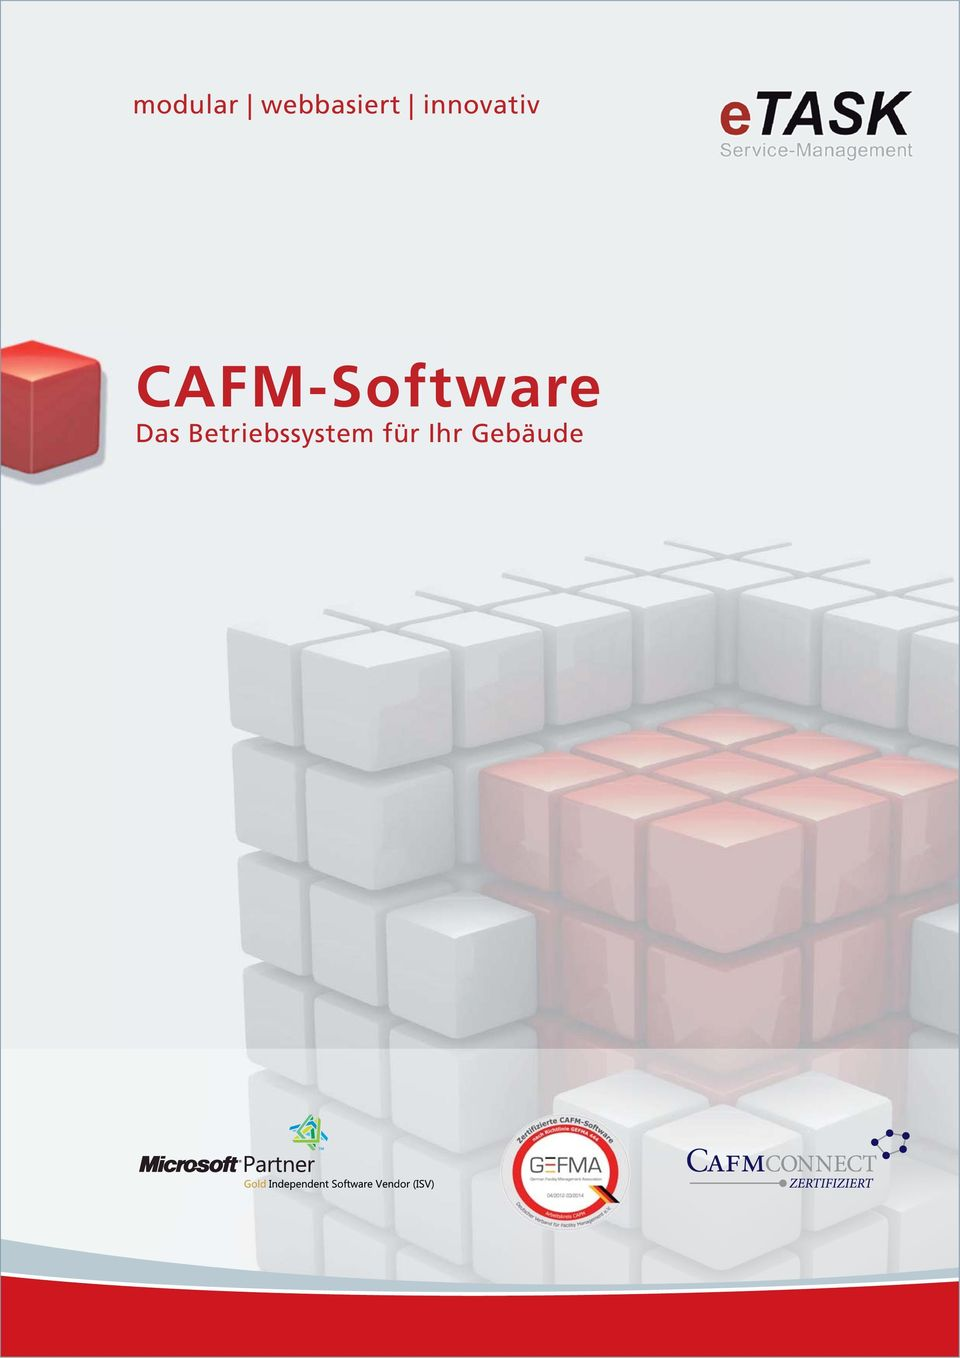 CAFM-Software Das